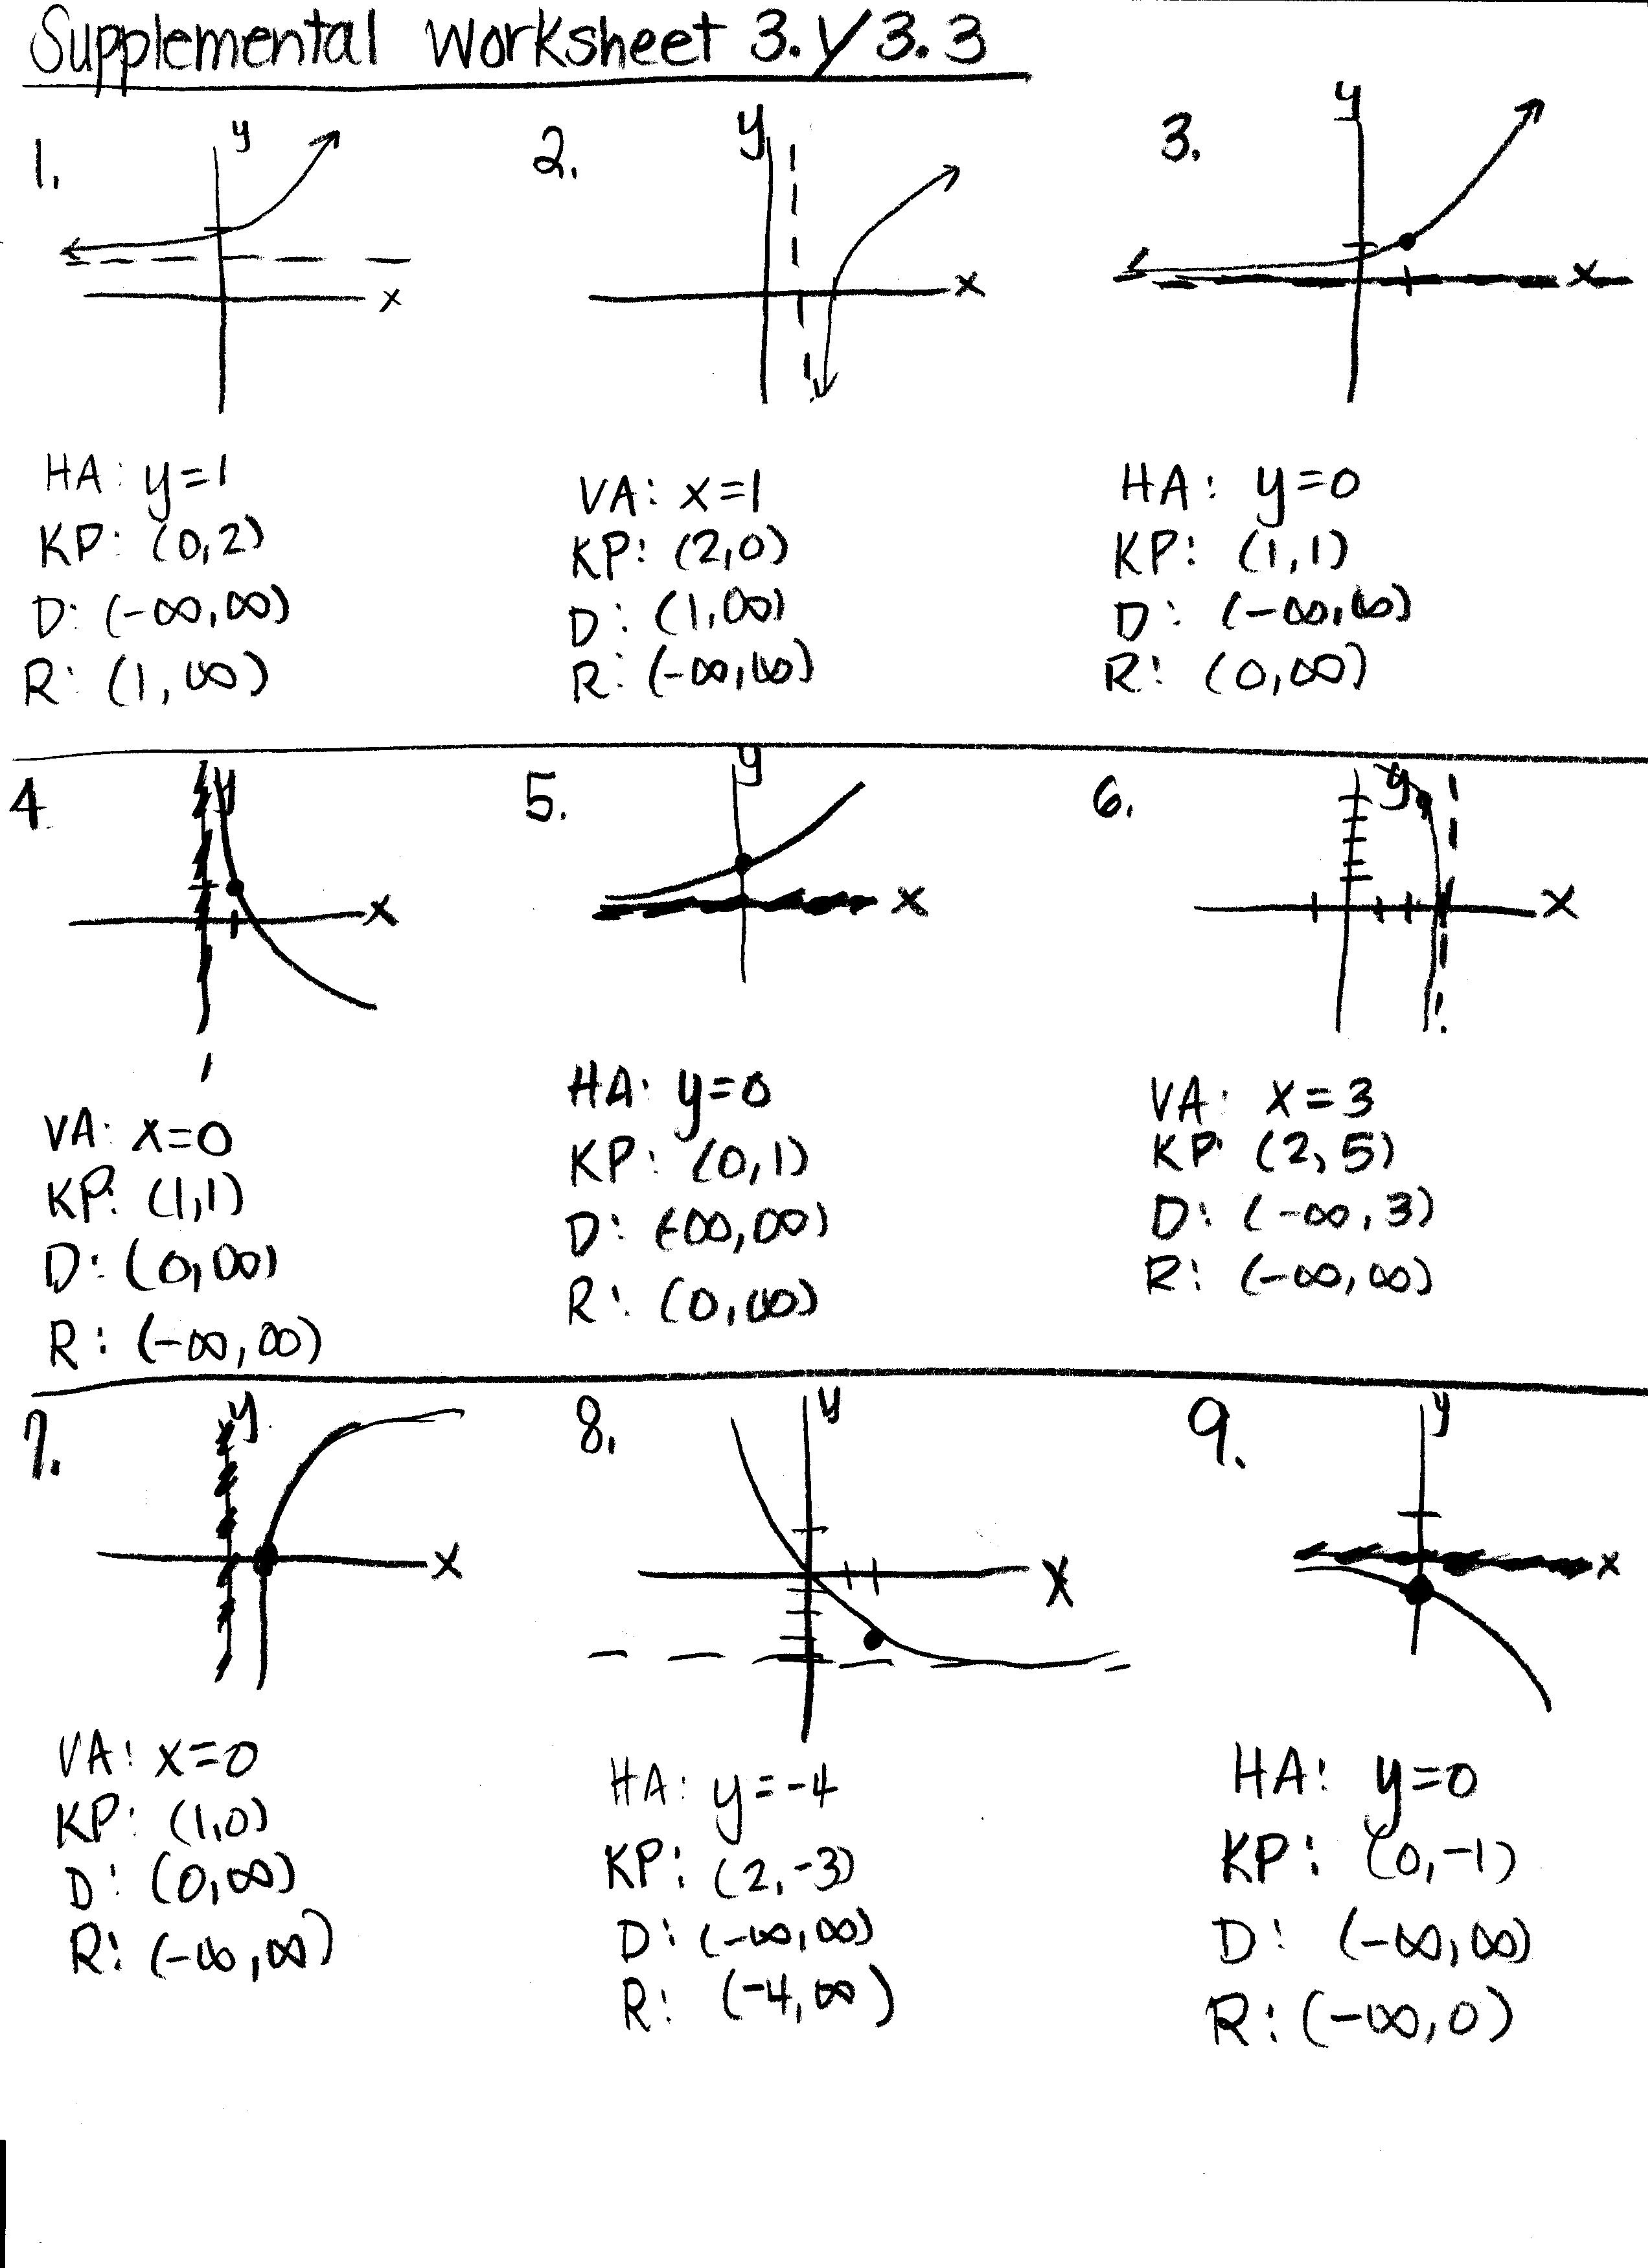 worksheet Graphing Exponential Functions Worksheet Algebra 1 graphing exponential functions worksheet algebra 1 abitlikethis answer key on polynomials worksheet